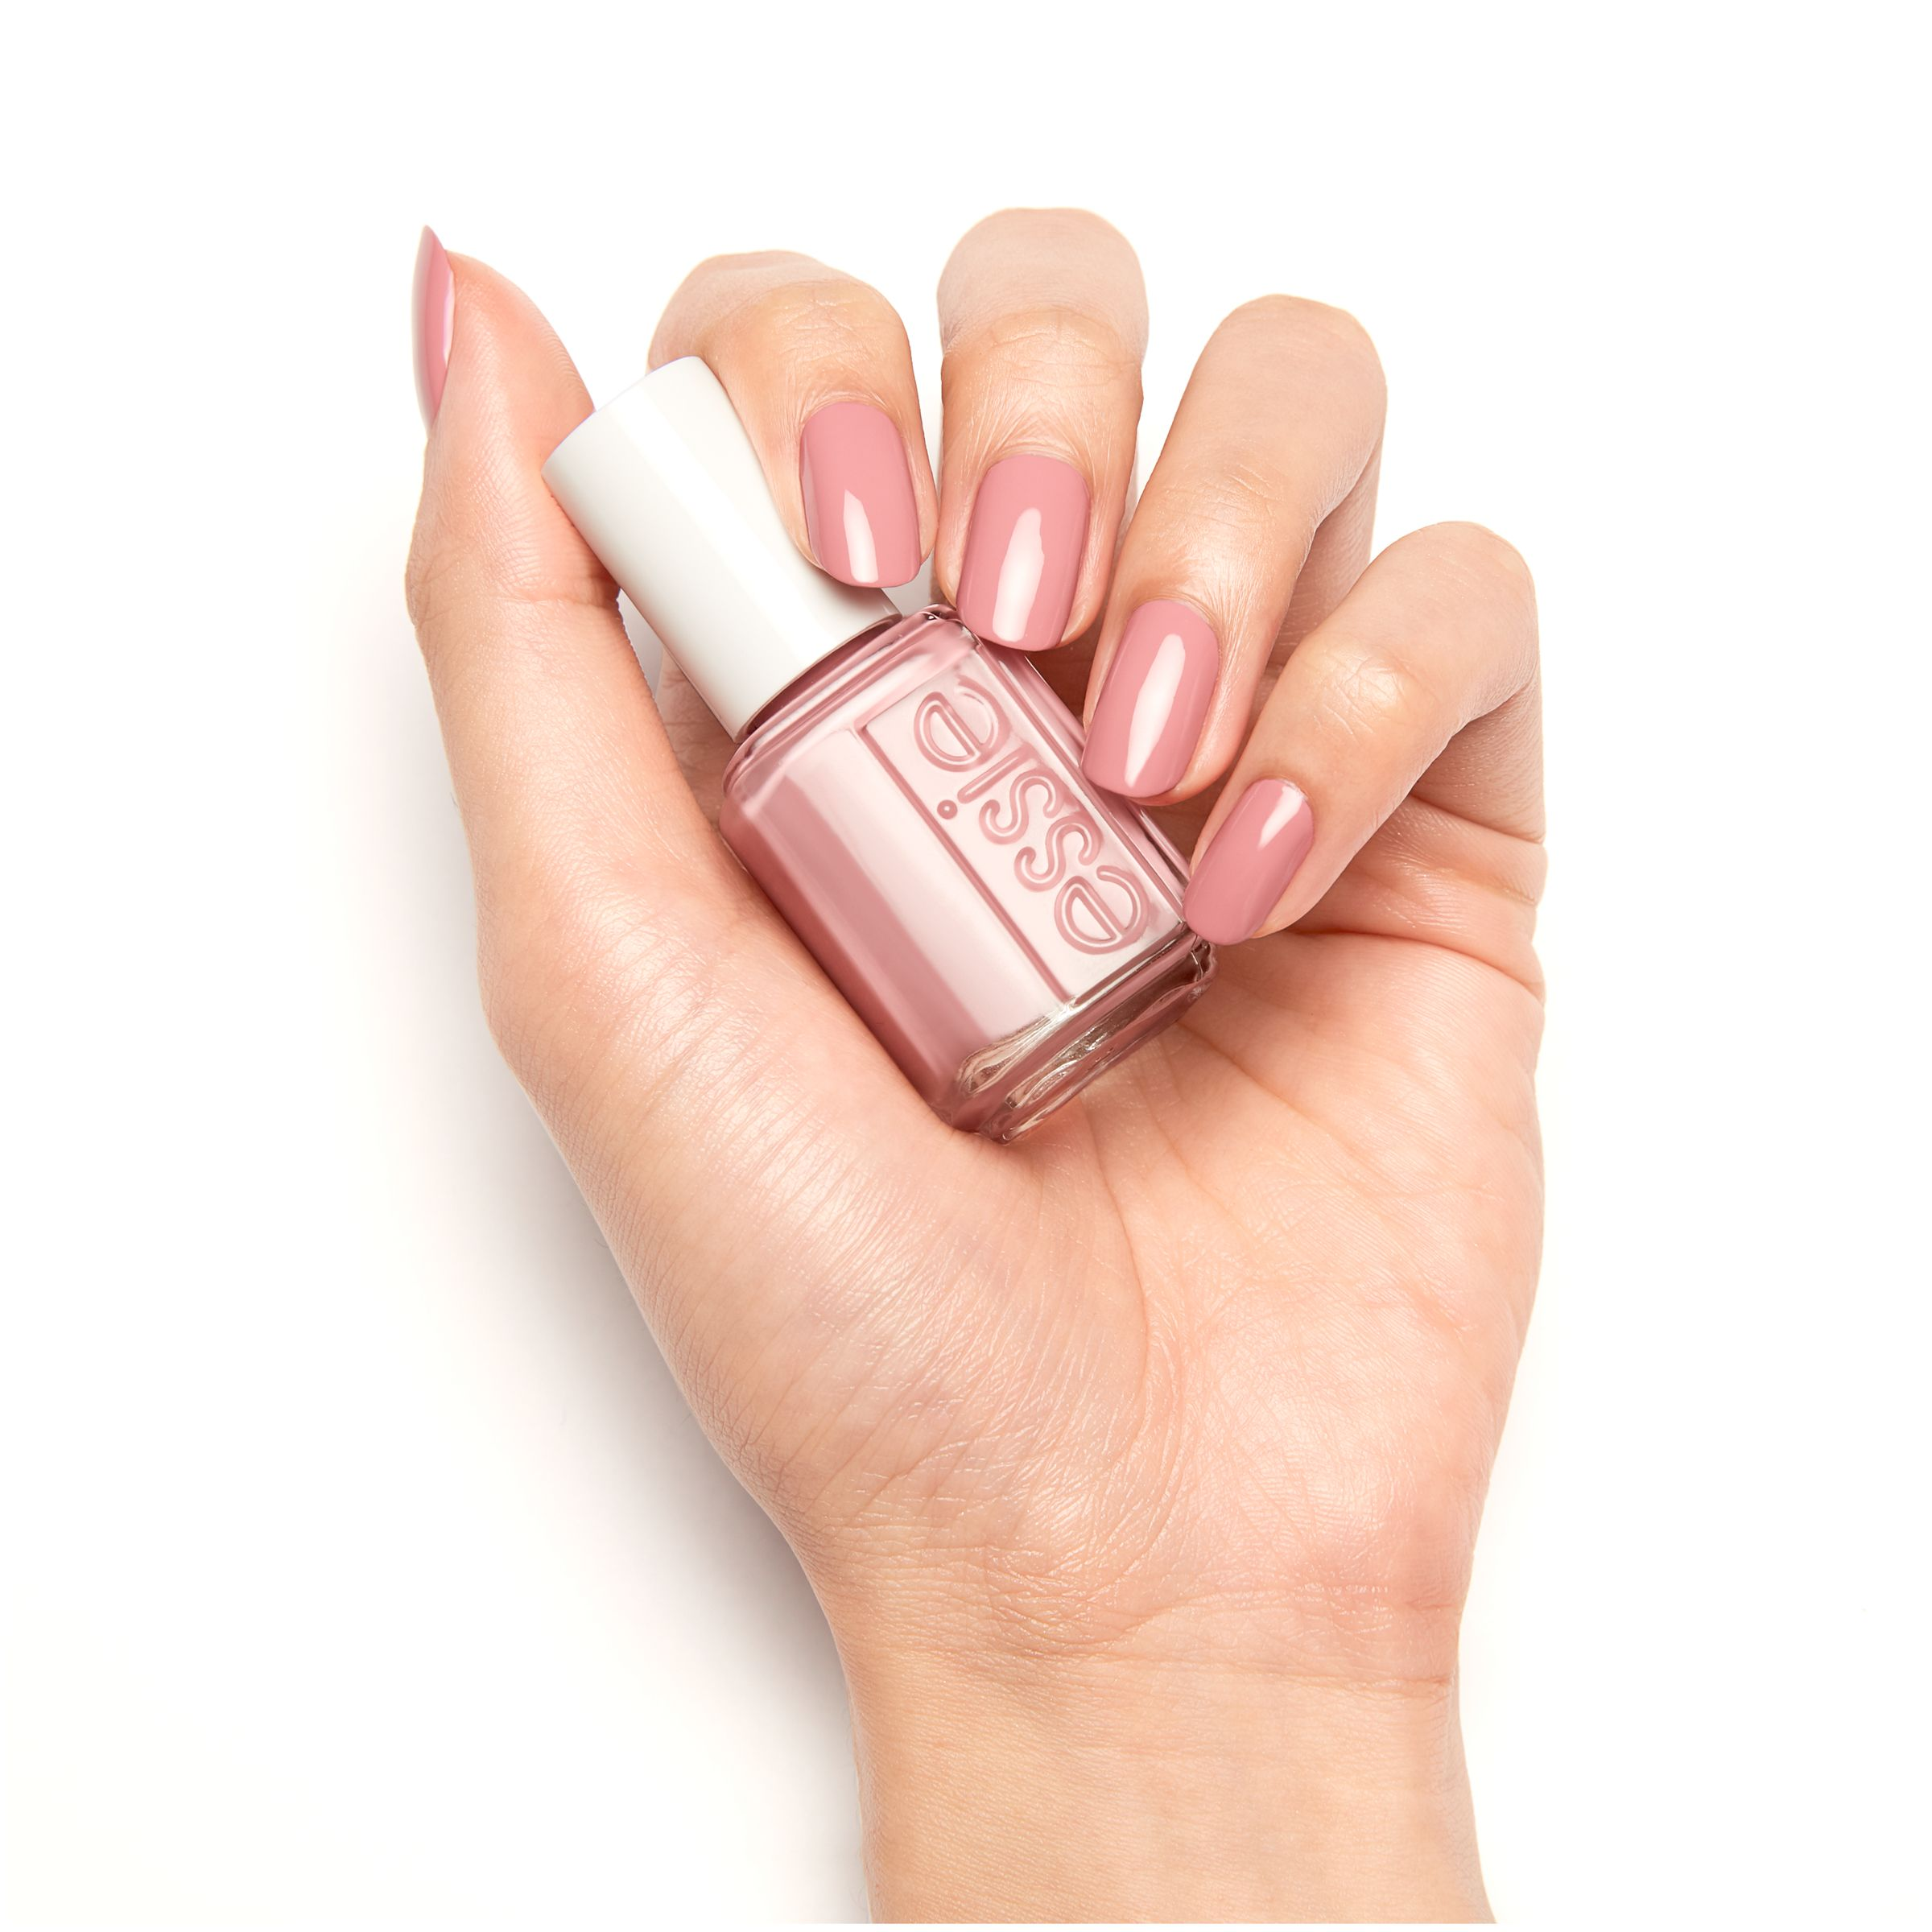 essie nail polish, rocky rose collection, dirty pink mauve, into the a-bliss, 0.46 fl. oz. - Walmart.com